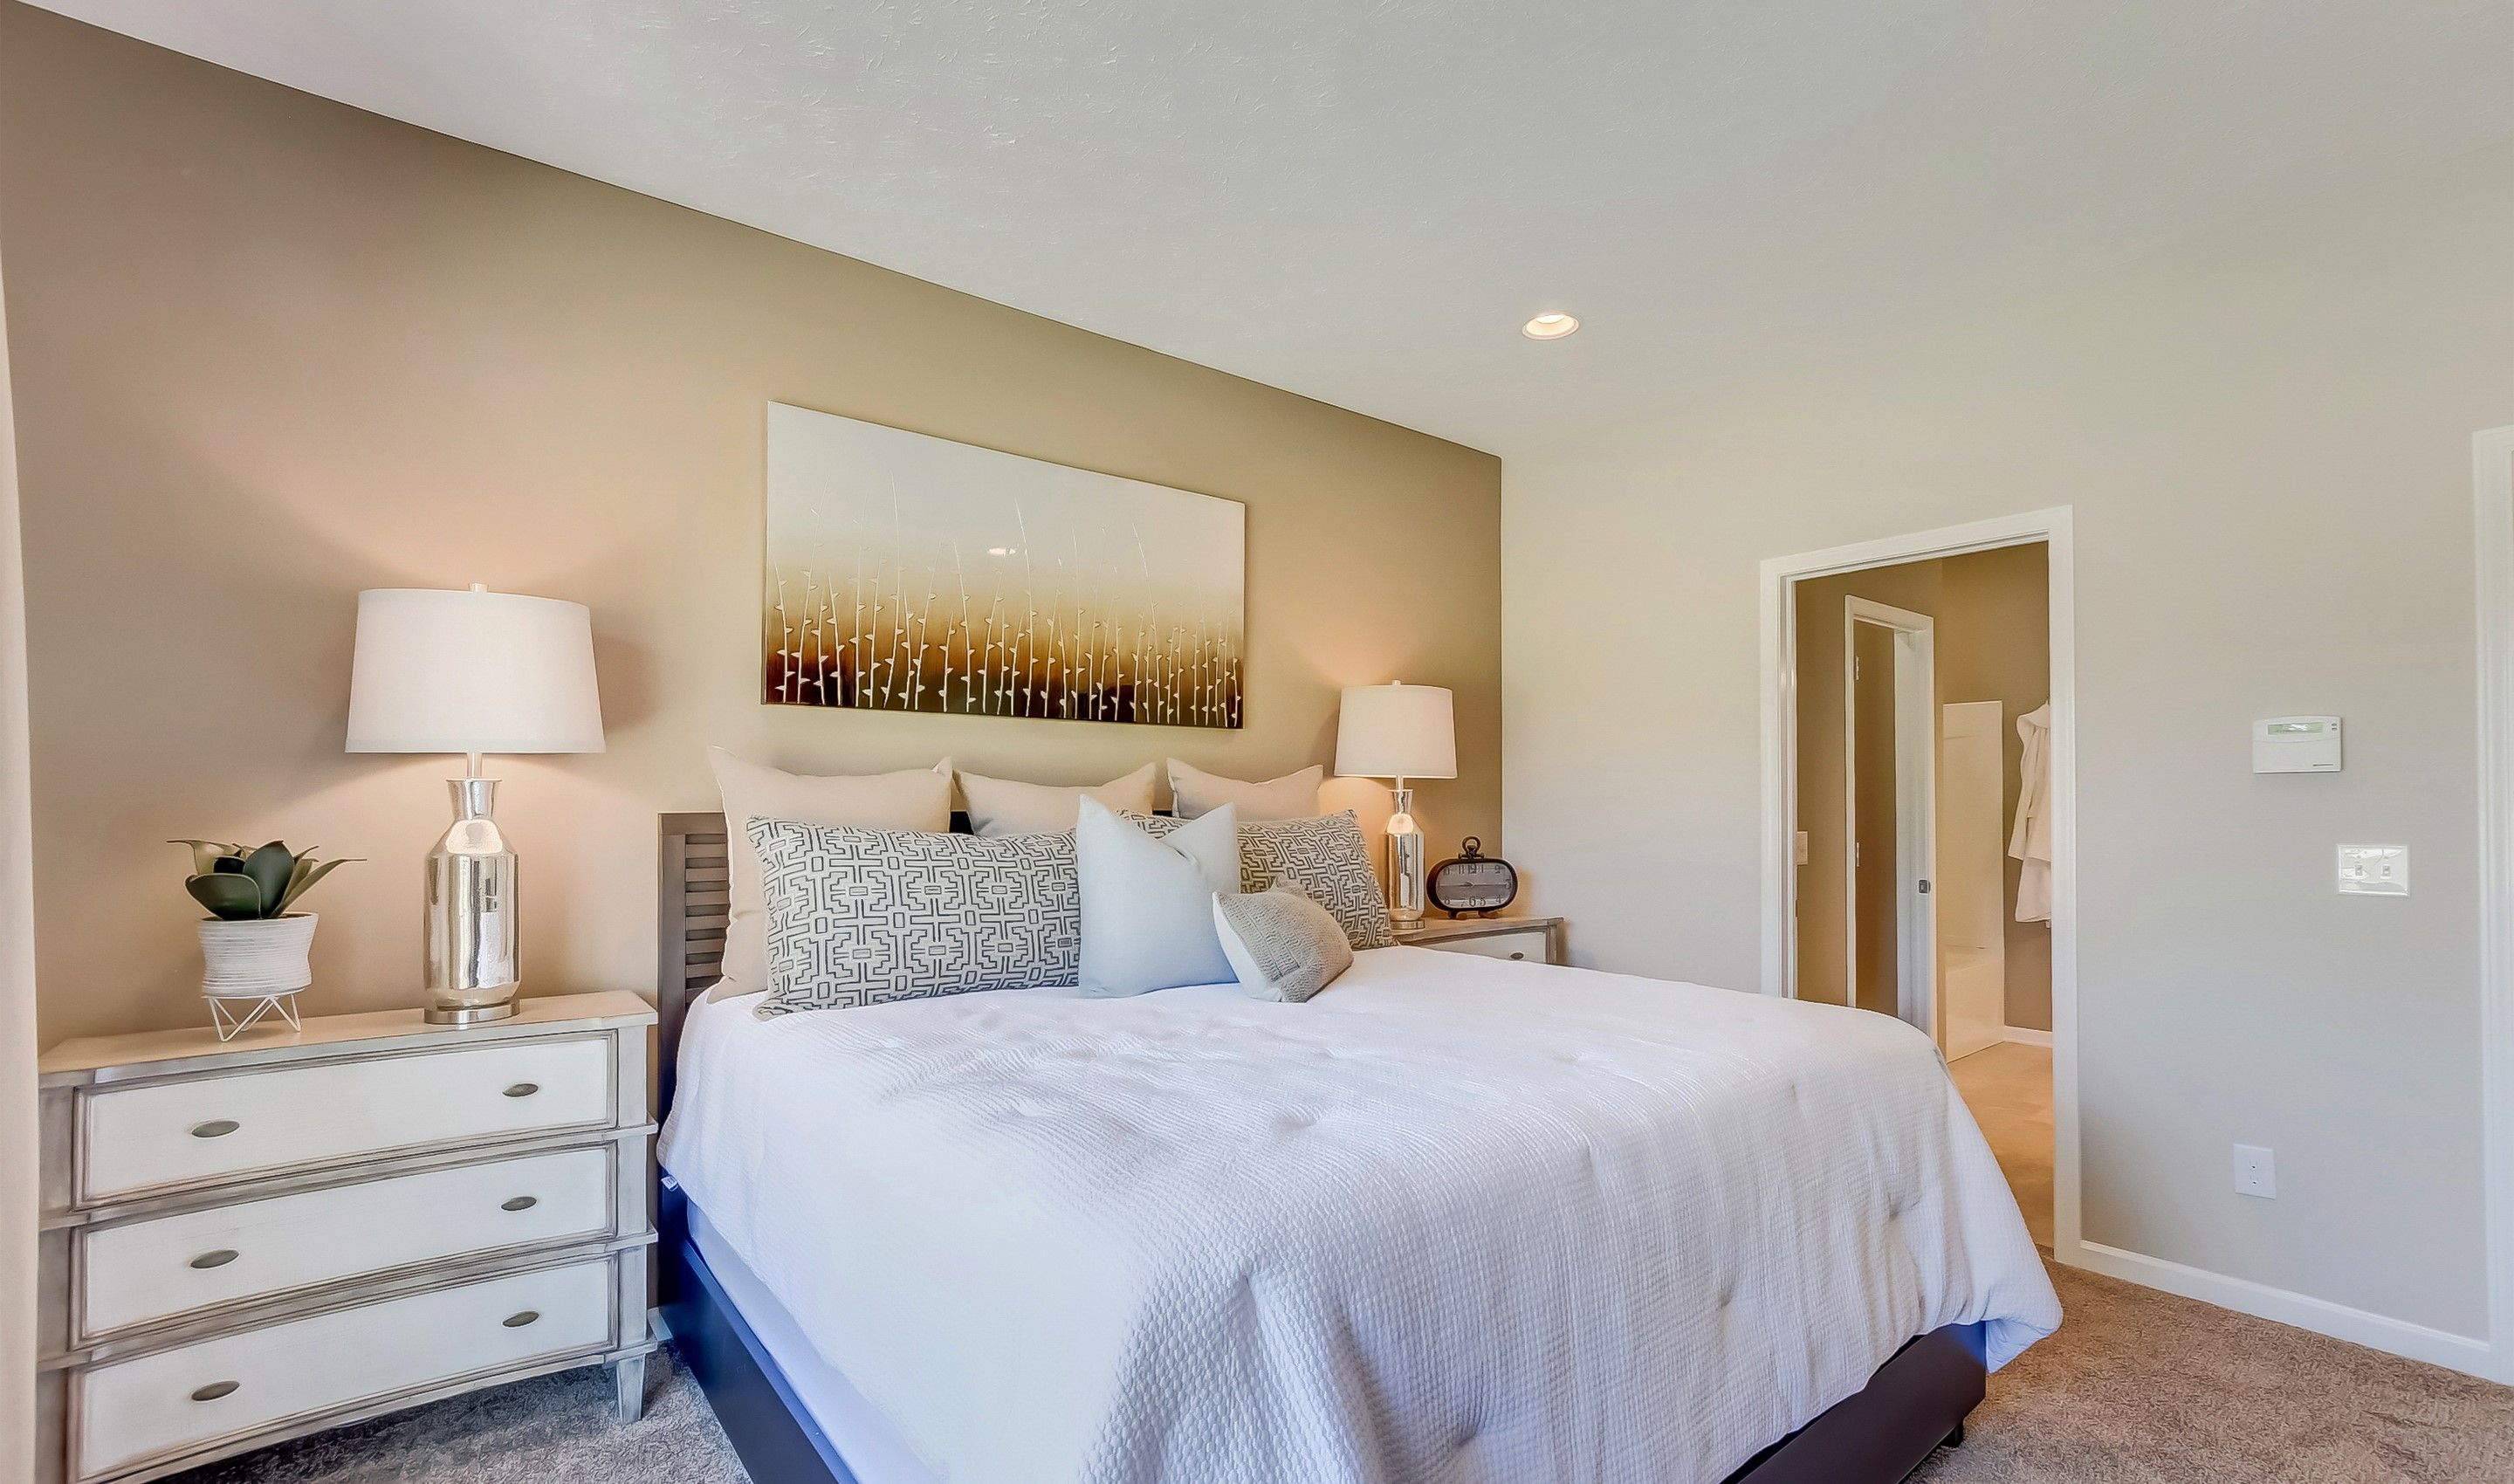 Bedroom featured in the Eastwood By K. Hovnanian's® Four Seasons in Eastern Shore, MD